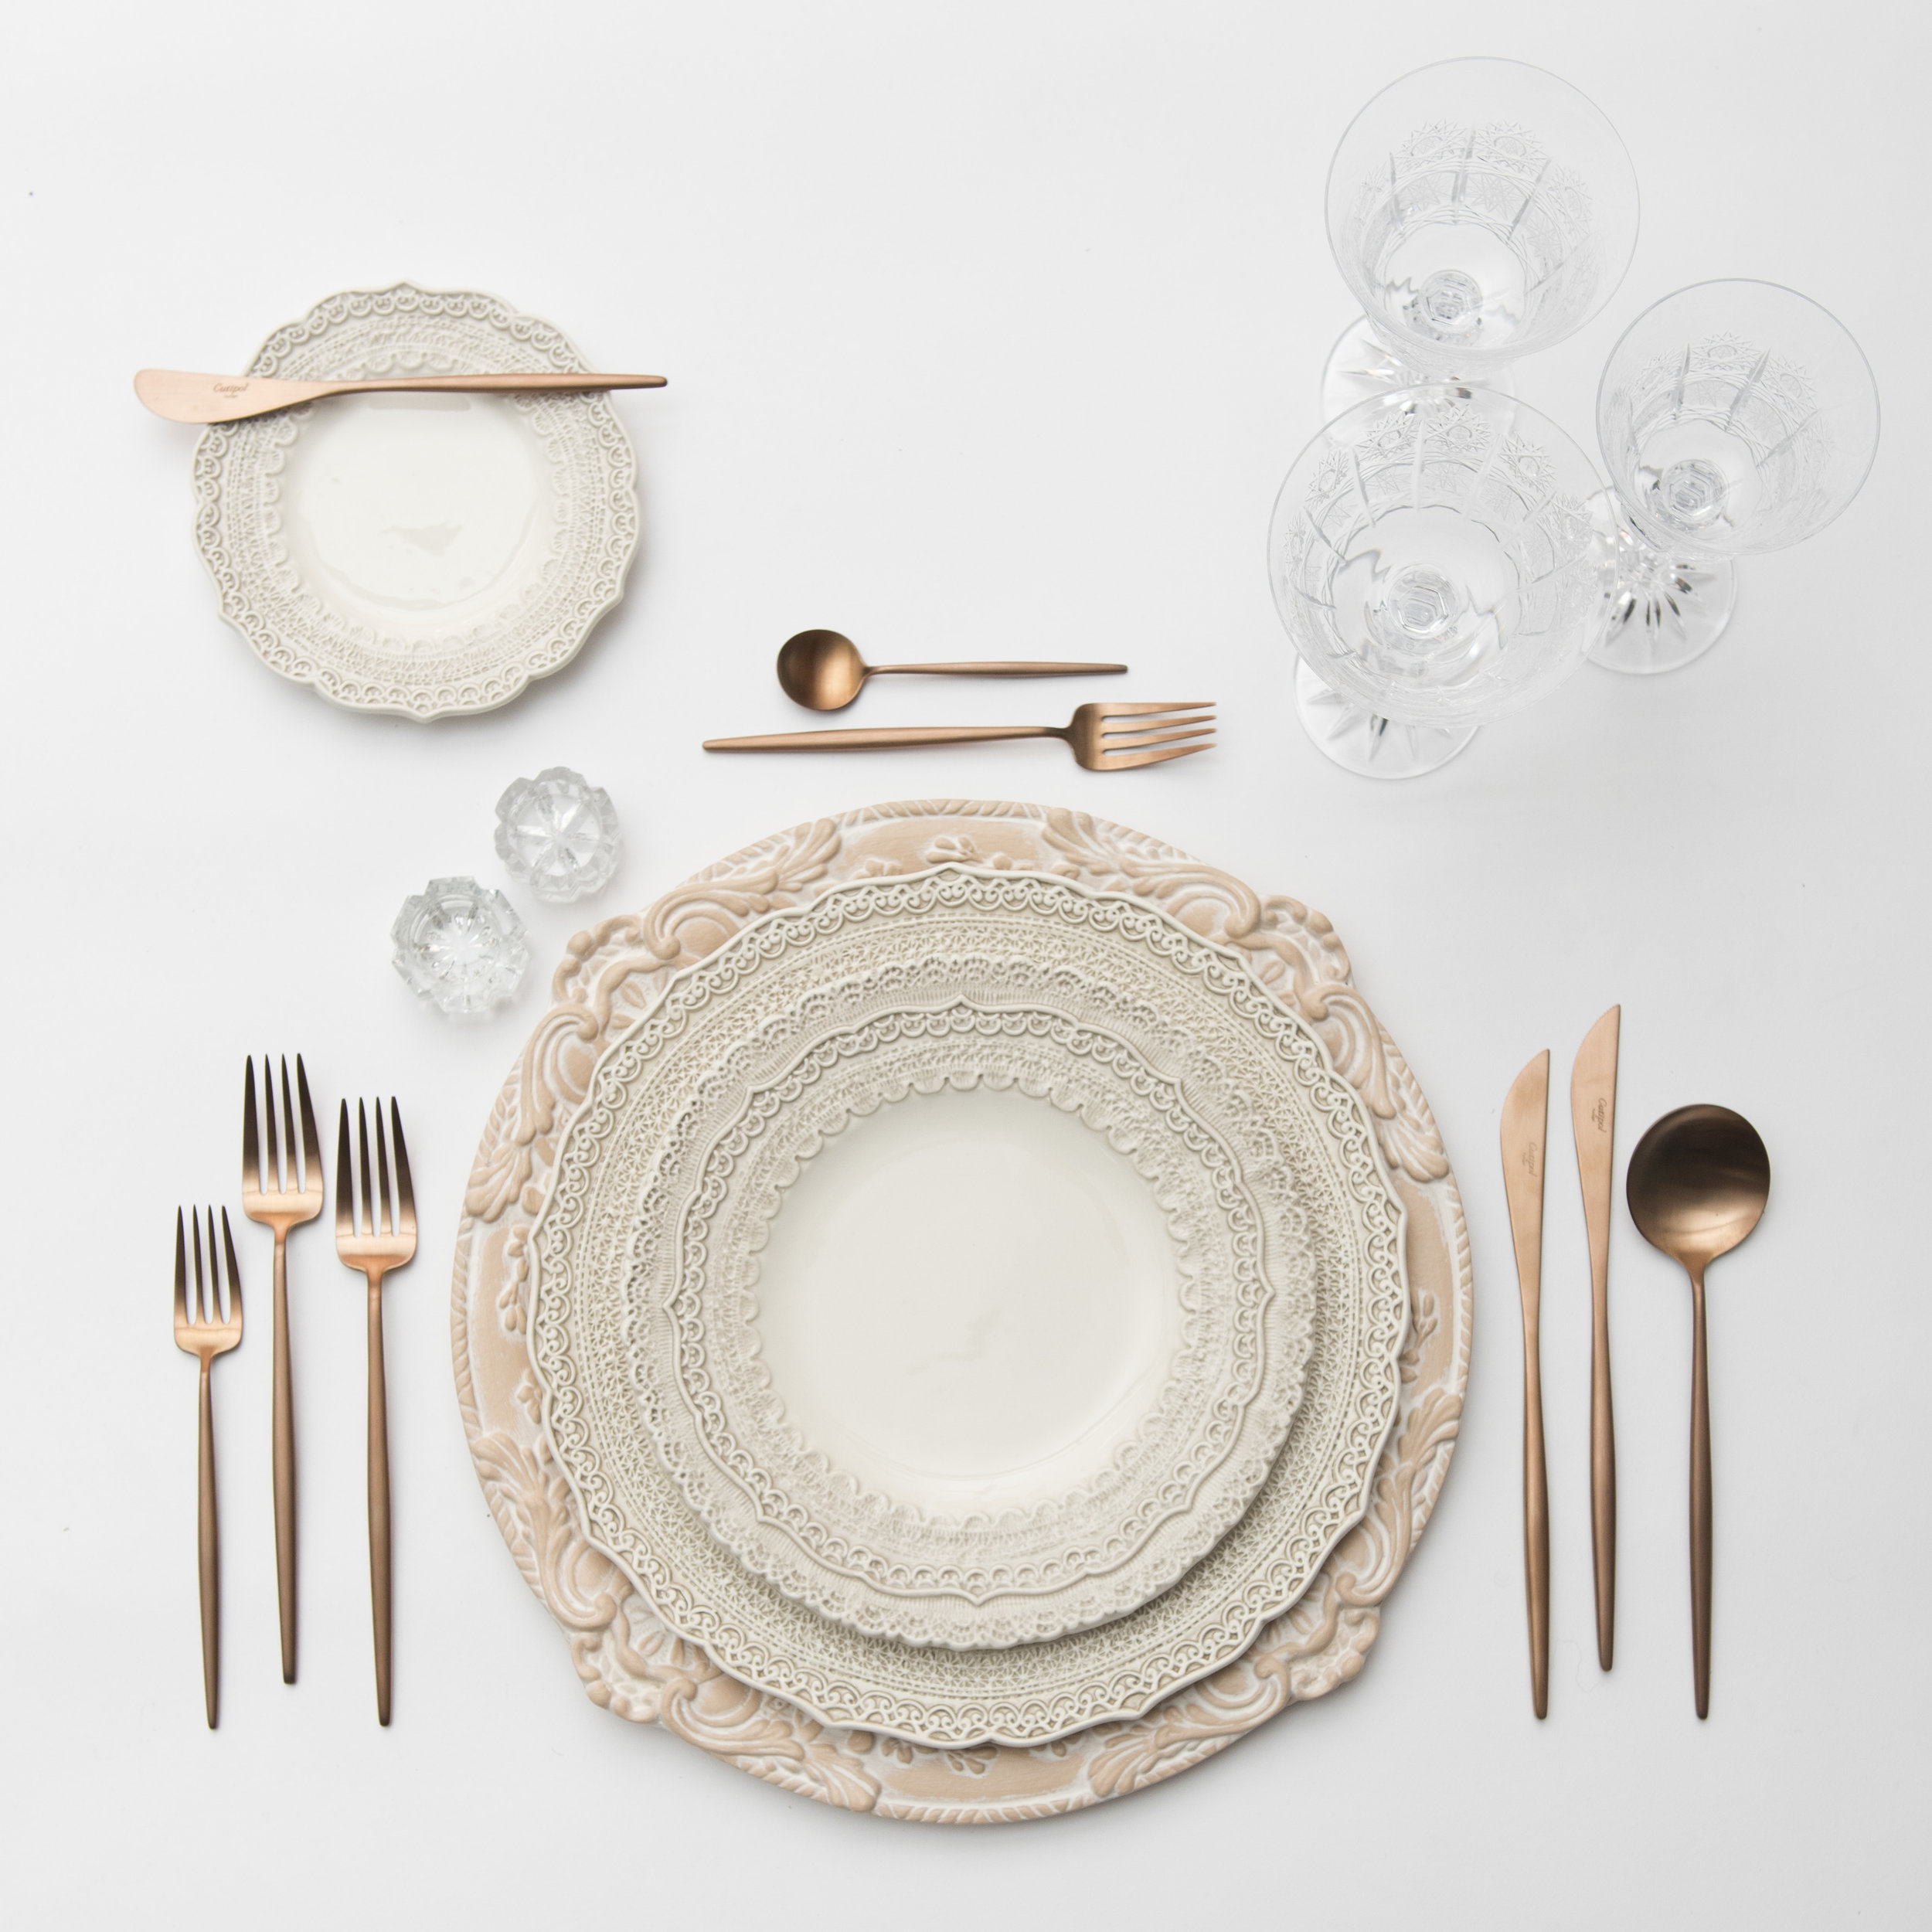 RENT: Verona Chargers in Terracotta + Lace Dinnerware in White + Moon Flatware in Brushed Rose Gold + Czech Crystal Stemware + Antique Crystal Salt Cellars  SHOP:Verona Chargers in Terracotta +Moon Flatware in Brushed Rose Gold